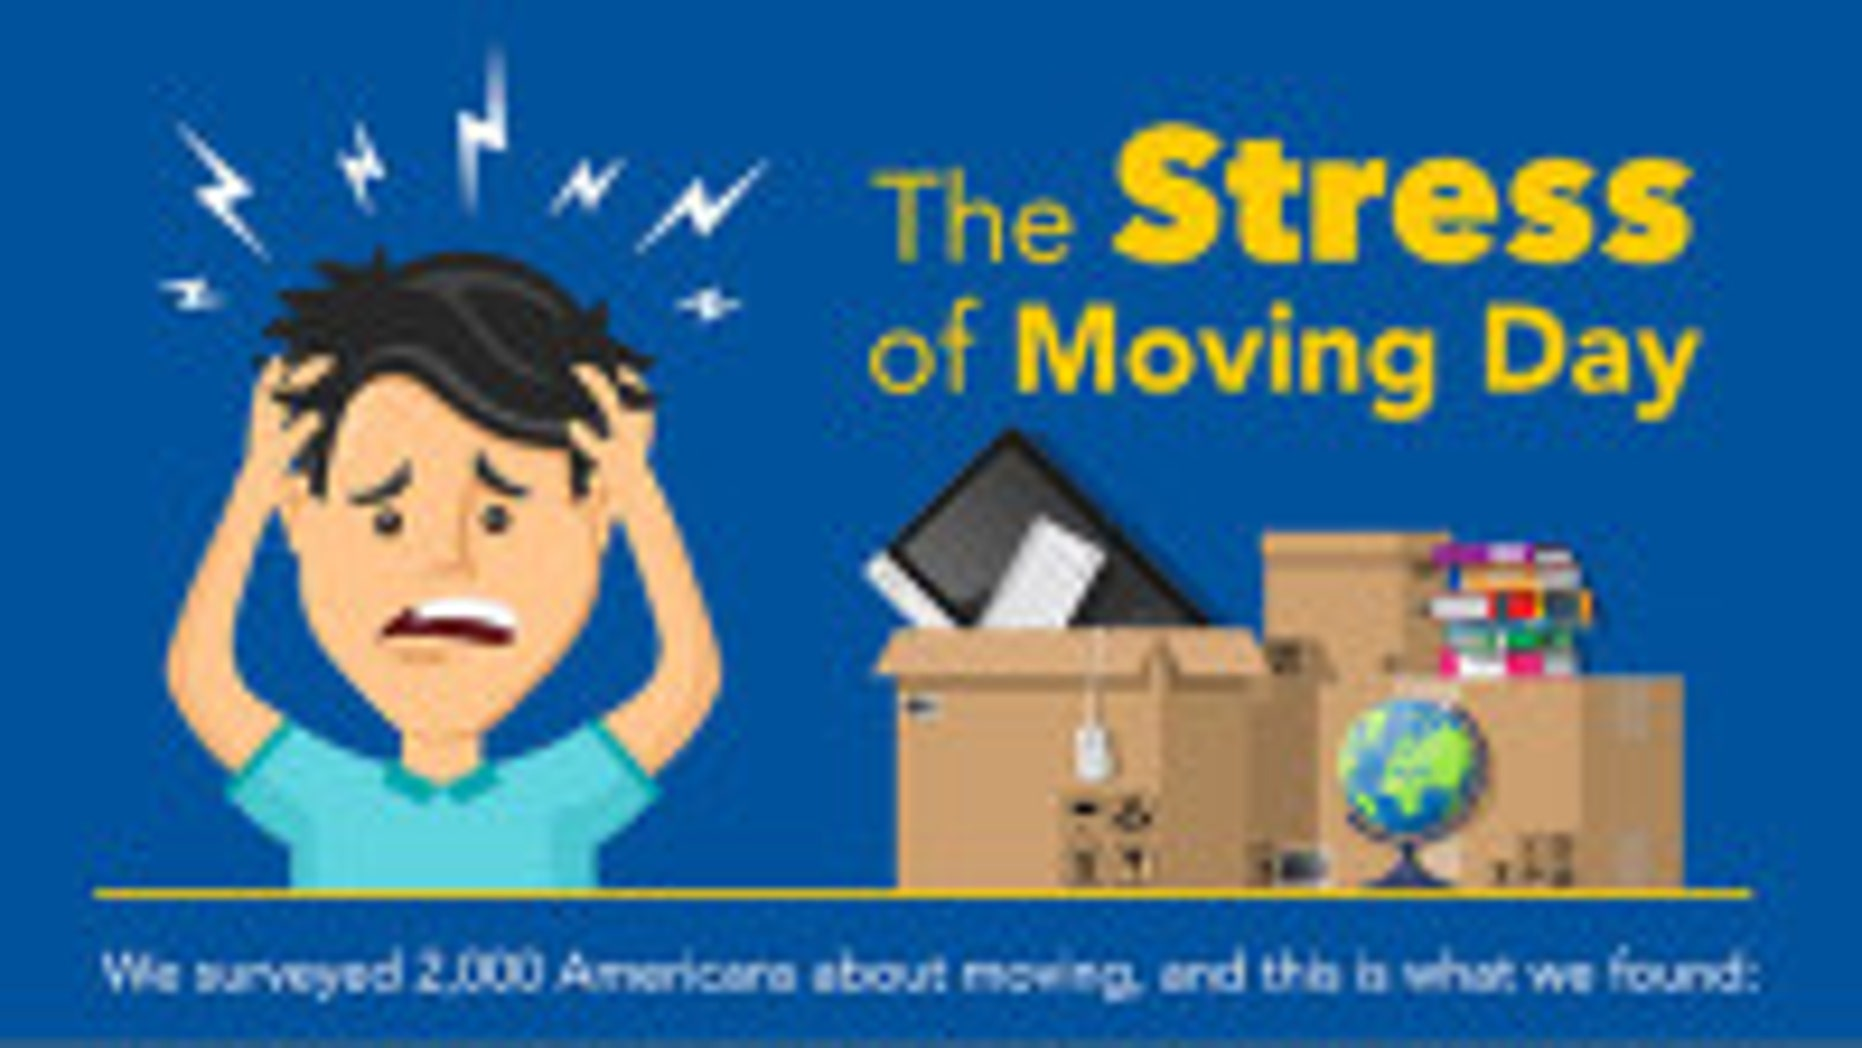 In fact, about one in five Americans (23 percent) think that moving is more stressful than planning a wedding, according to new research. Twenty-seven percent think it's more stressful than a job interview, and more than one in 10 (13 percent) even go as far as to say it's more stressful than a week in jail.